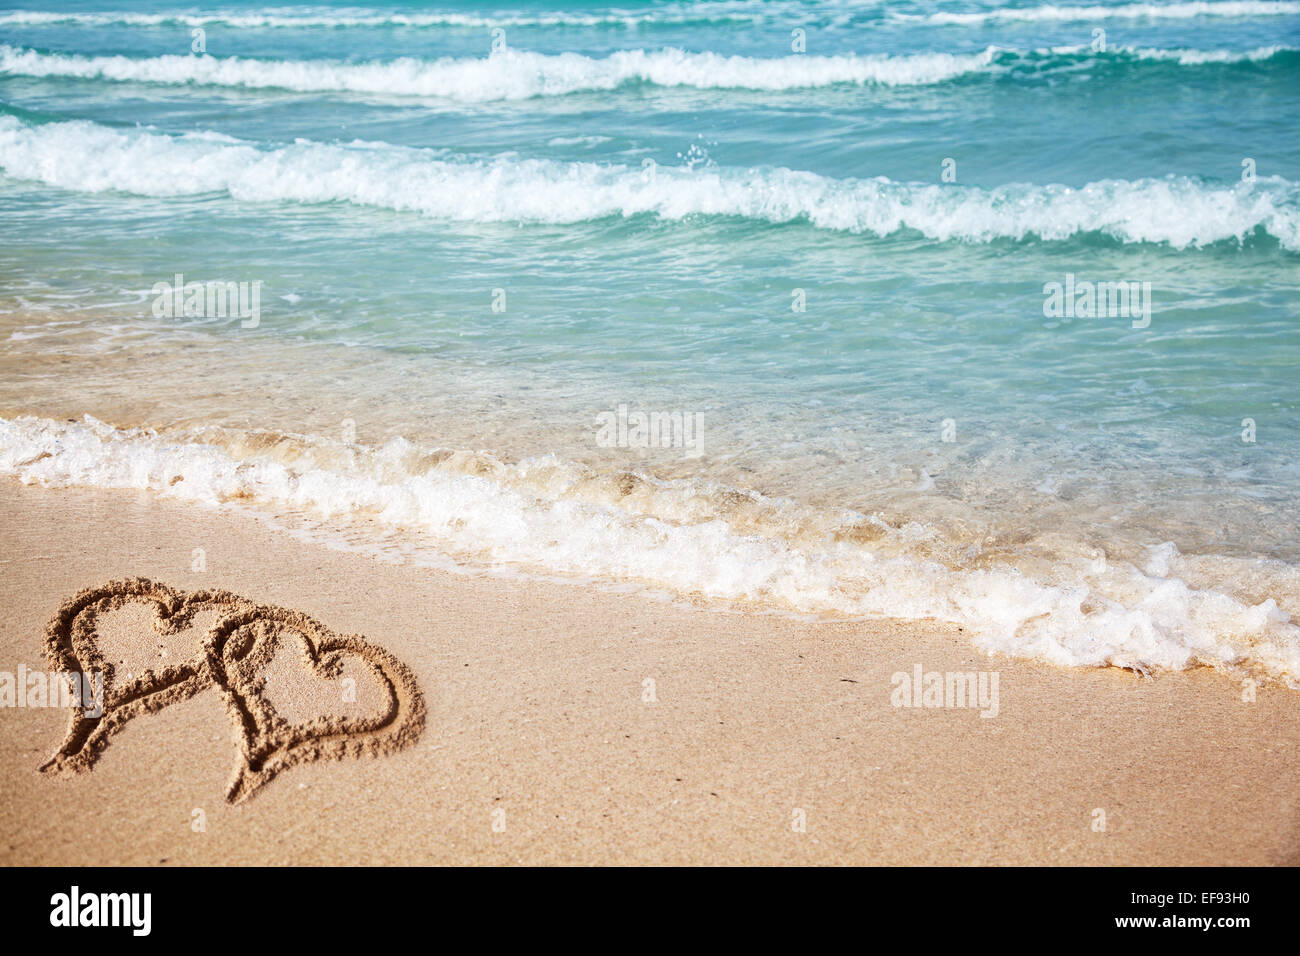 Hearts drawn on the beach sand. - Stock Image